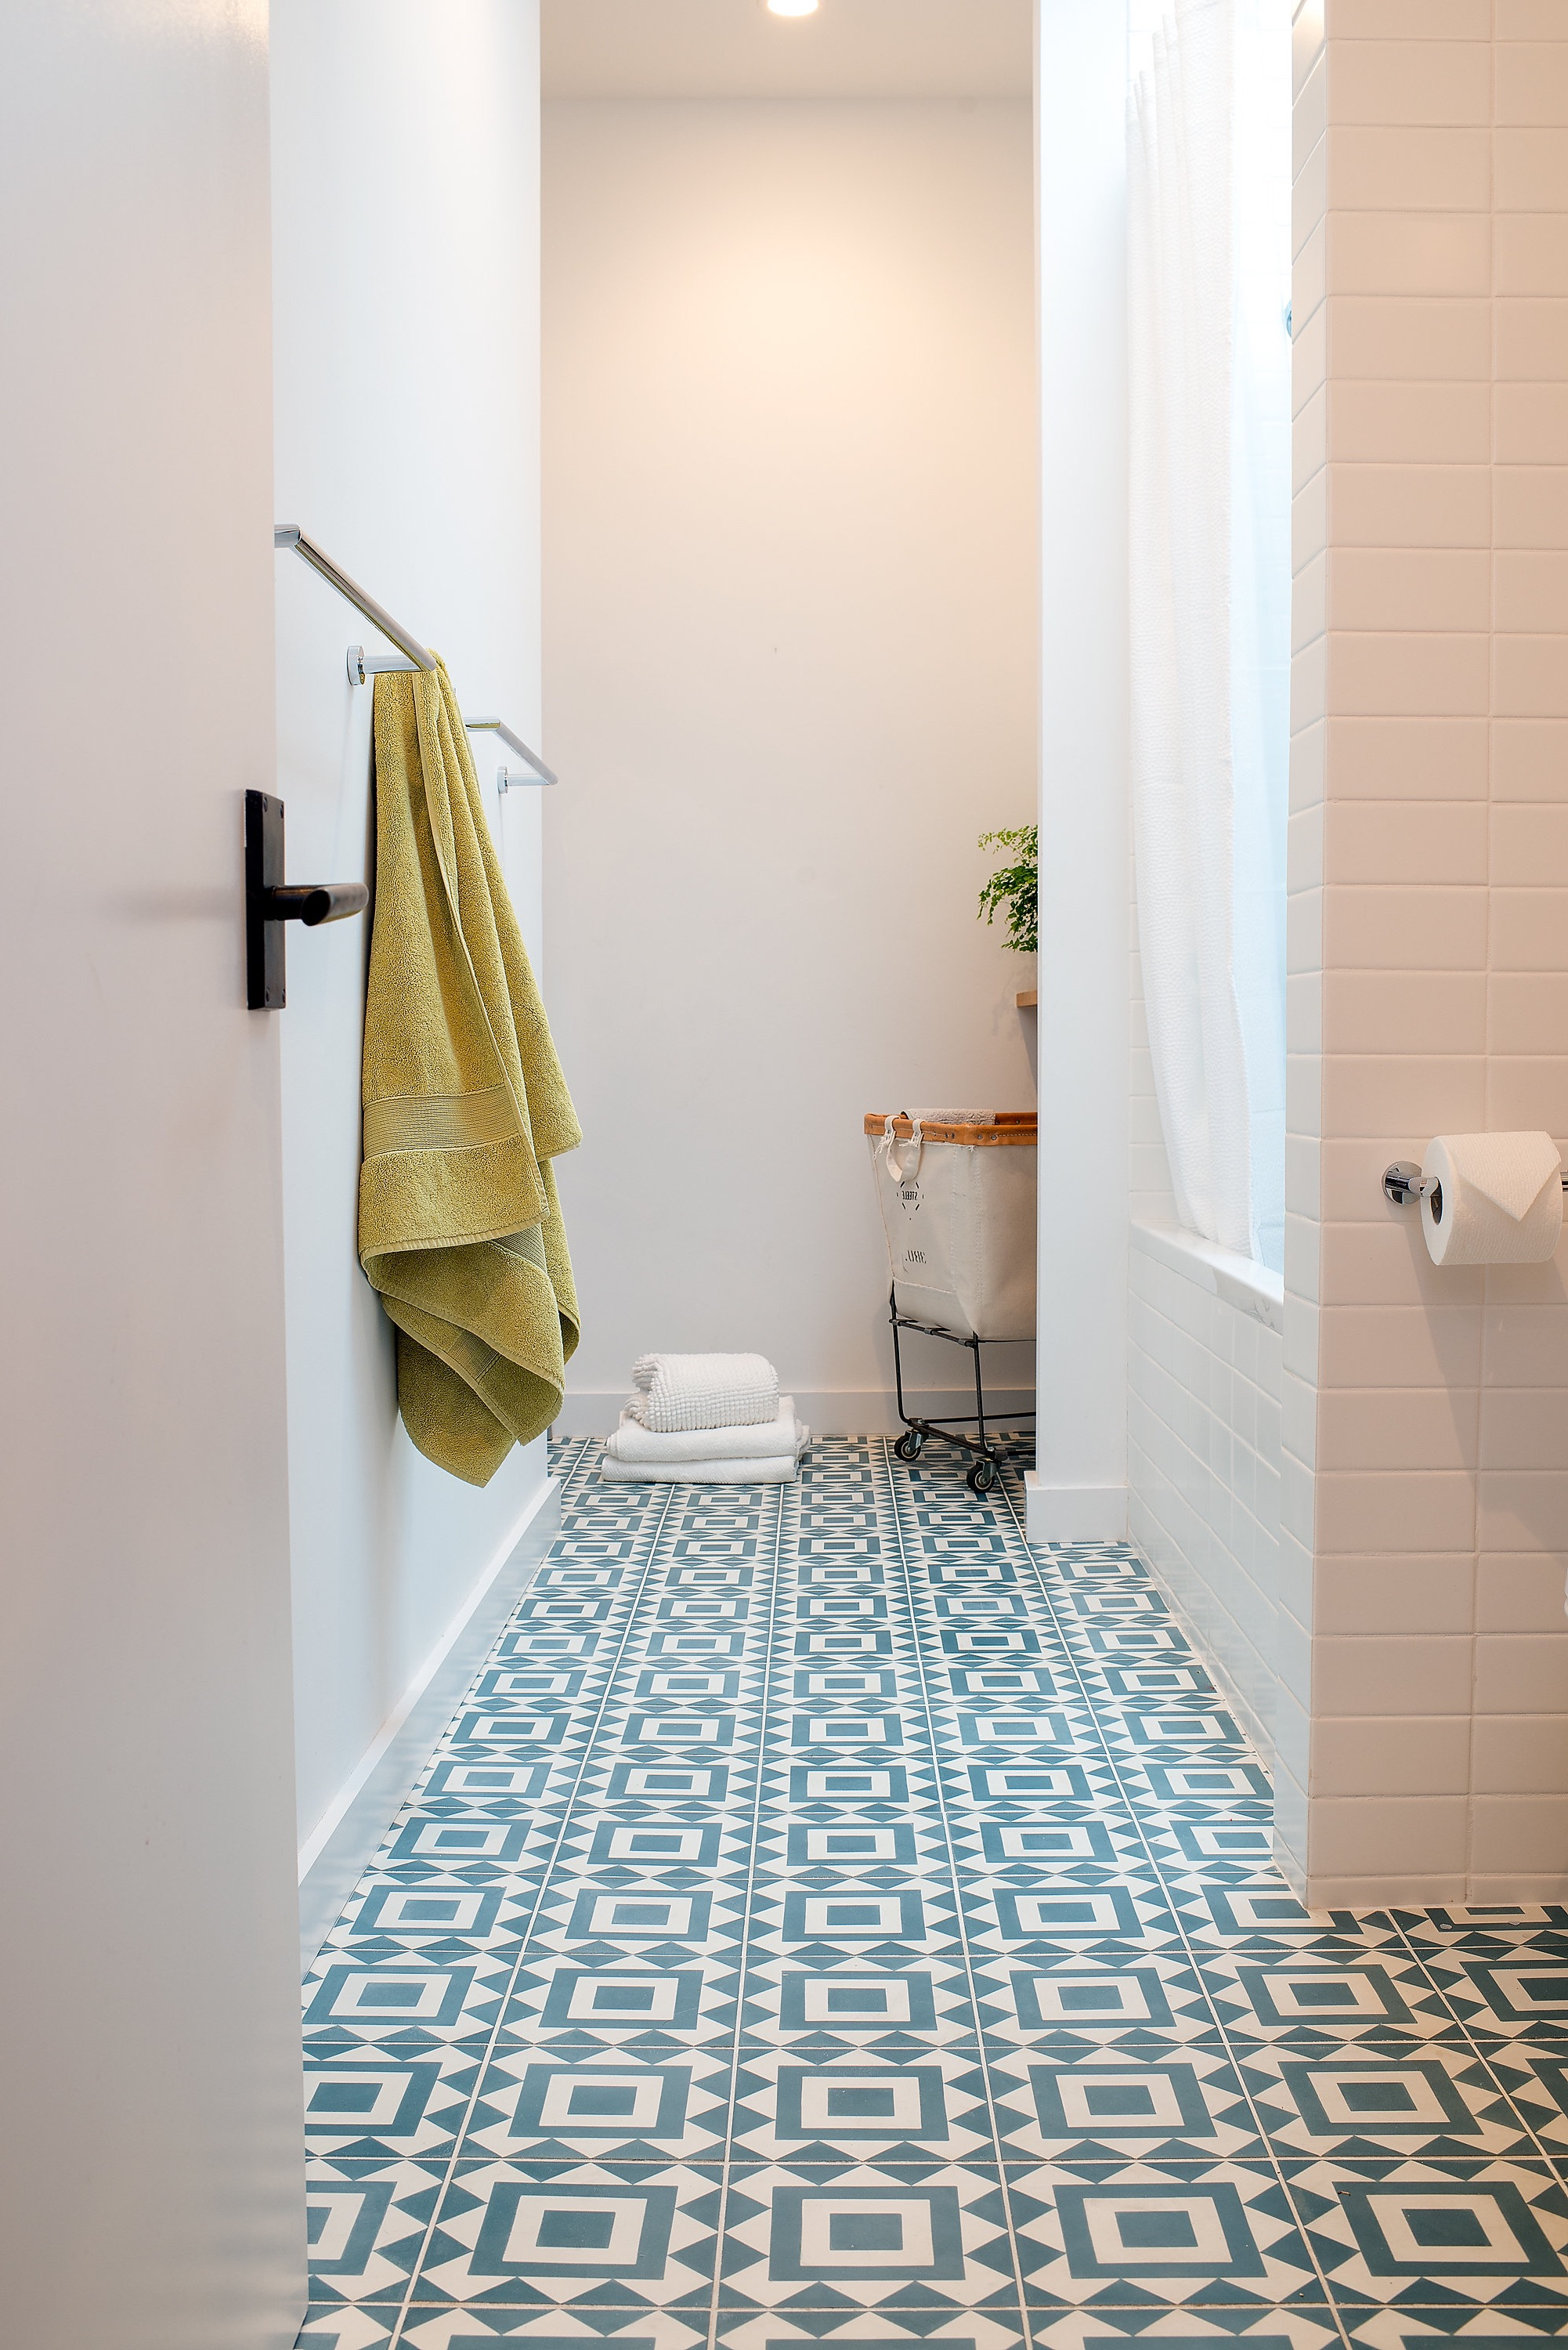 Geometric Tile Floor For Bathroom (Image 8 of 25)